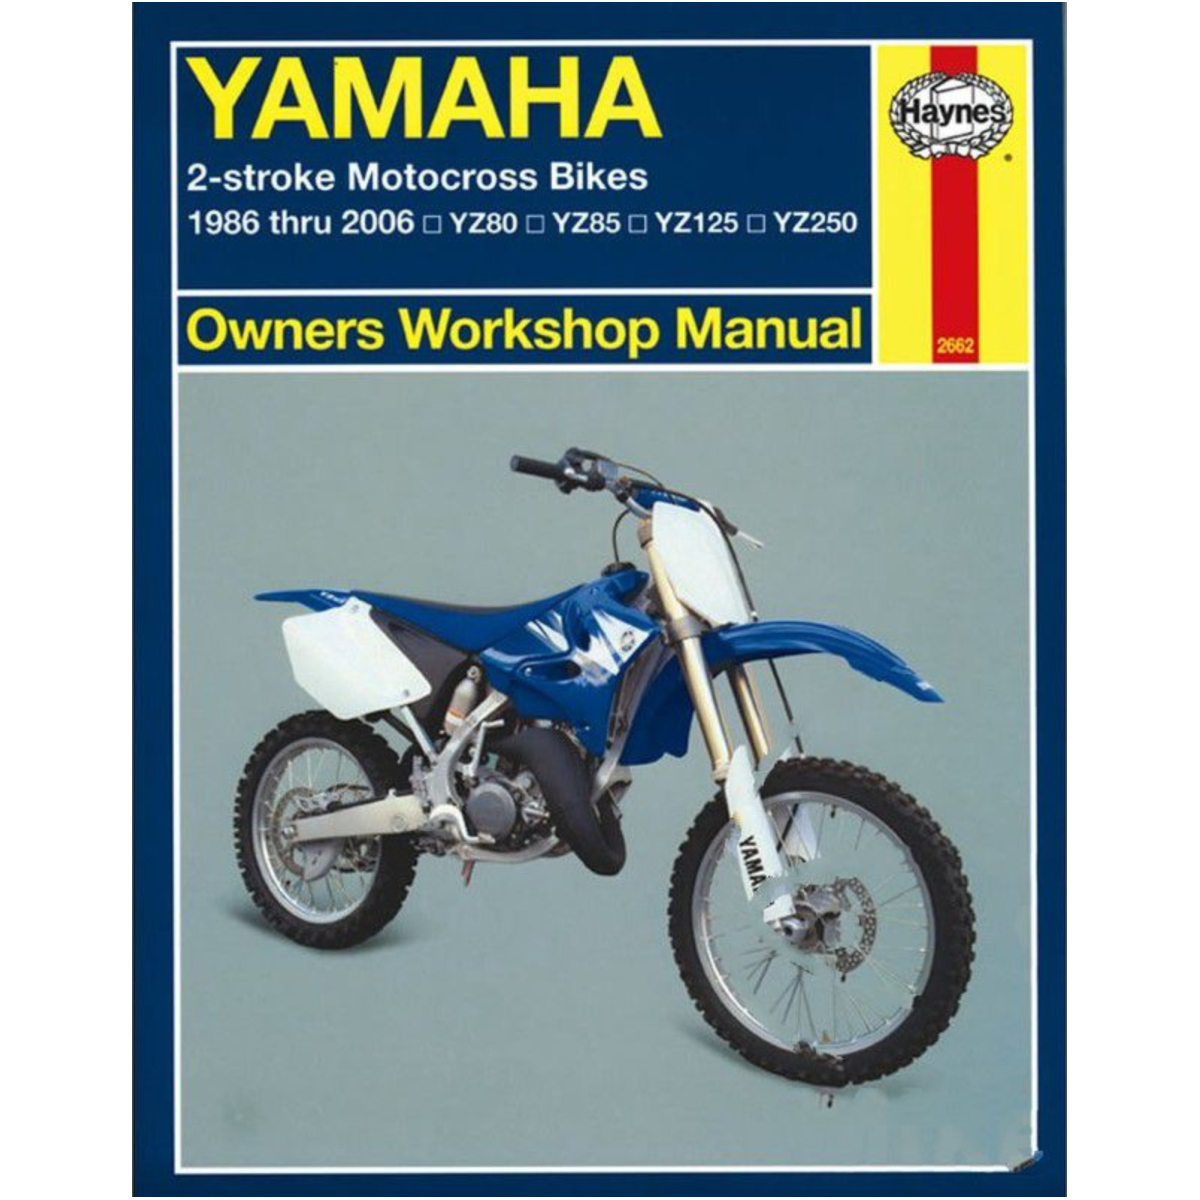 Haynes repair manual 2662